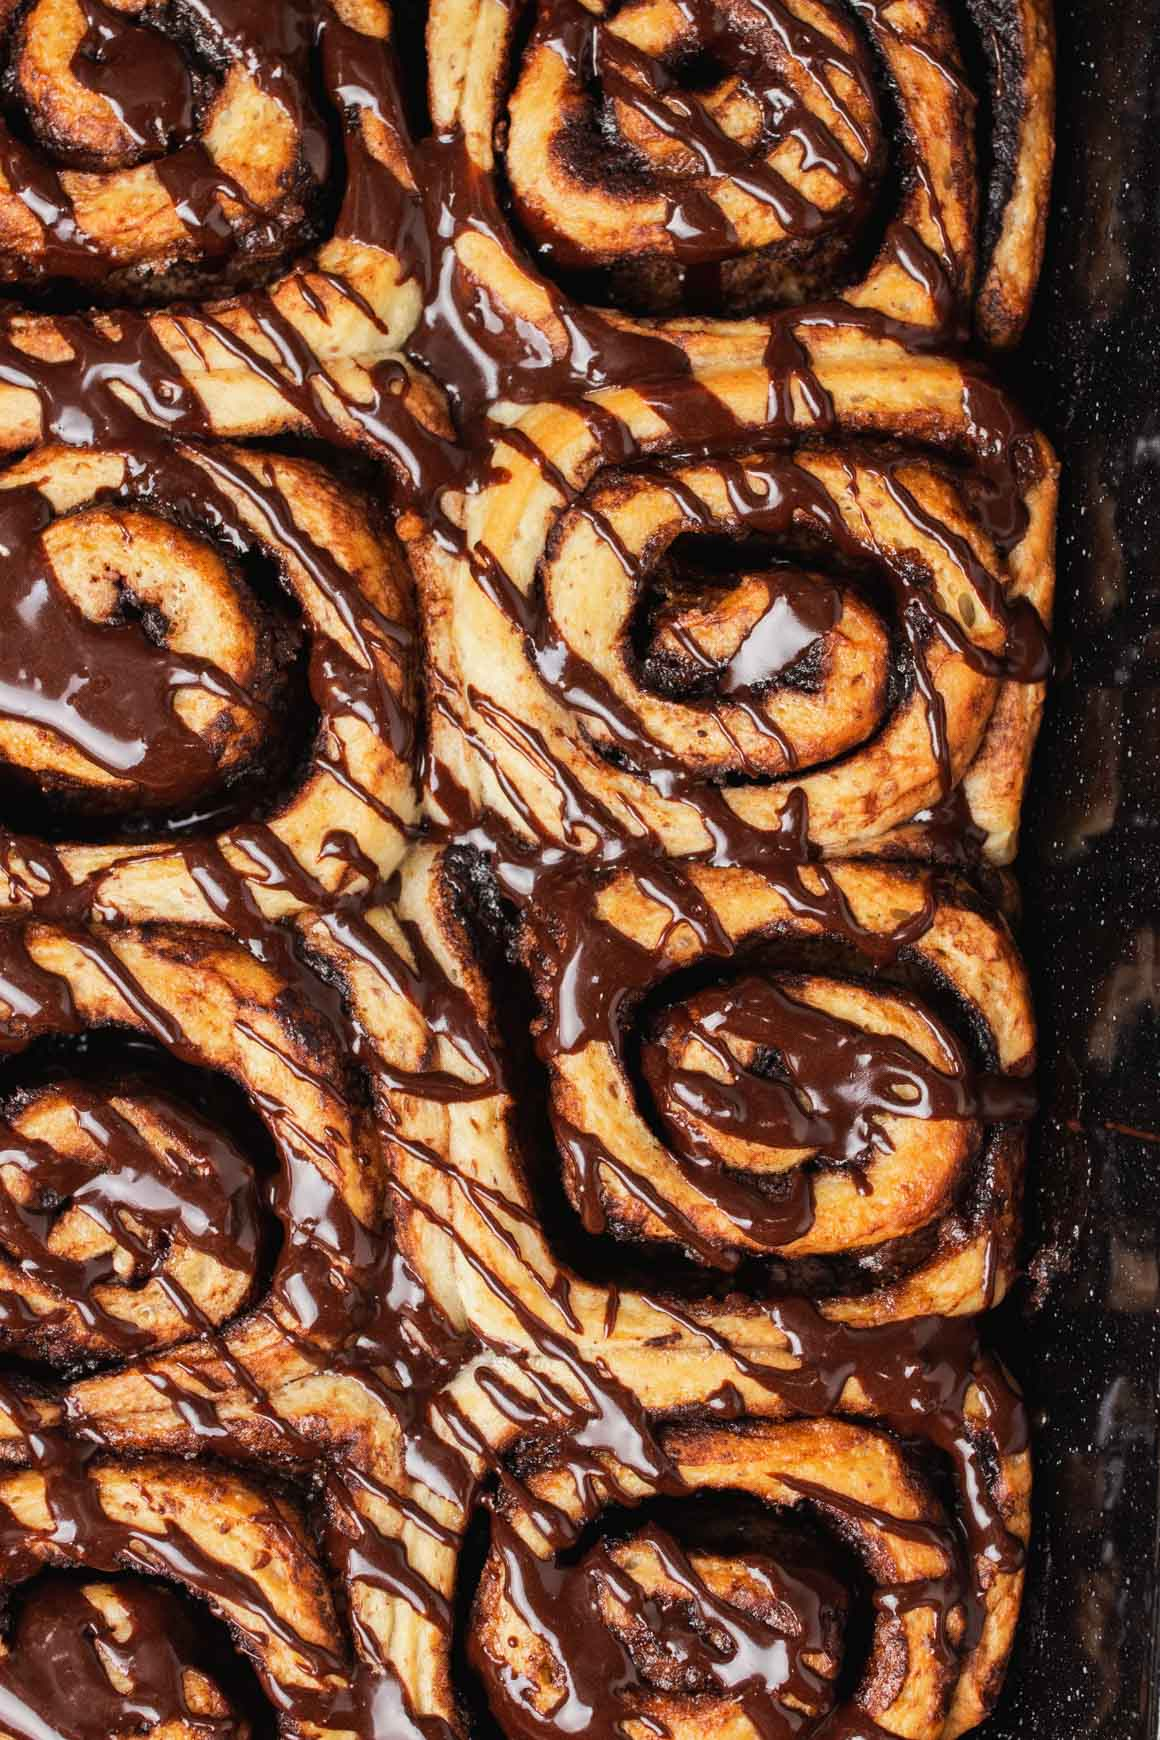 baking dish with chocolate cinnamon rolls topped with chocolate glaze